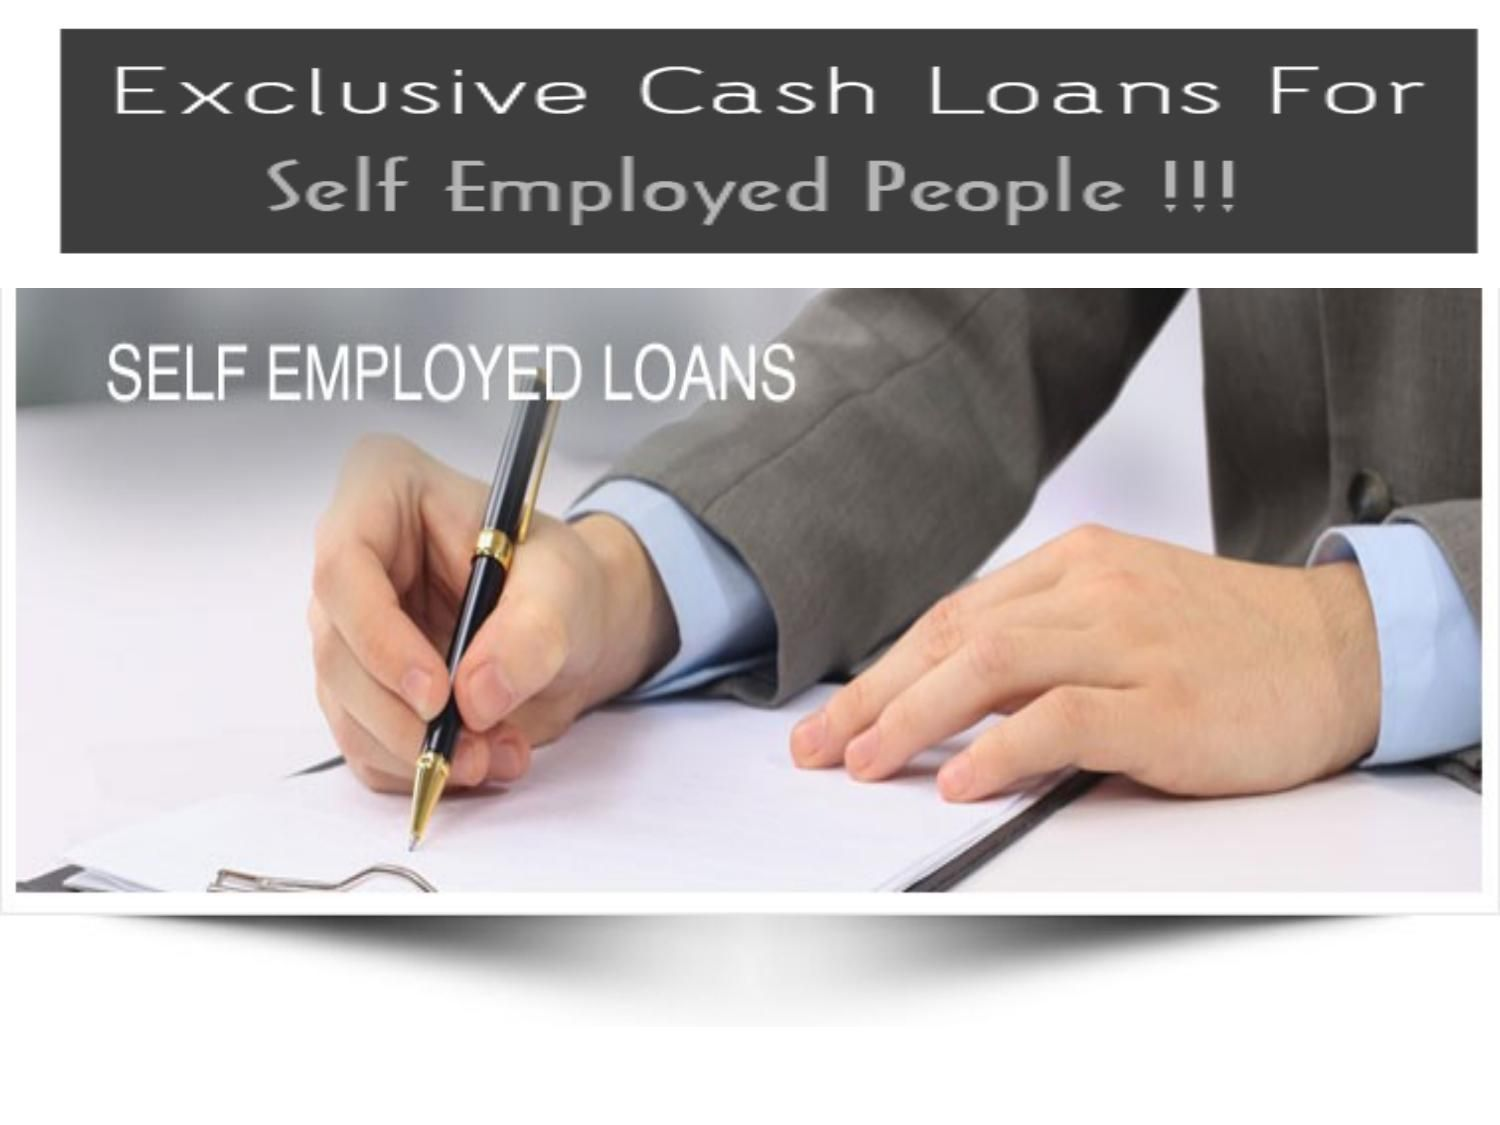 Payday Loans For Self Employed Get Instant Cash Same Day Loans Help For Business Associates Same Day Loans Payday Loans Online Payday